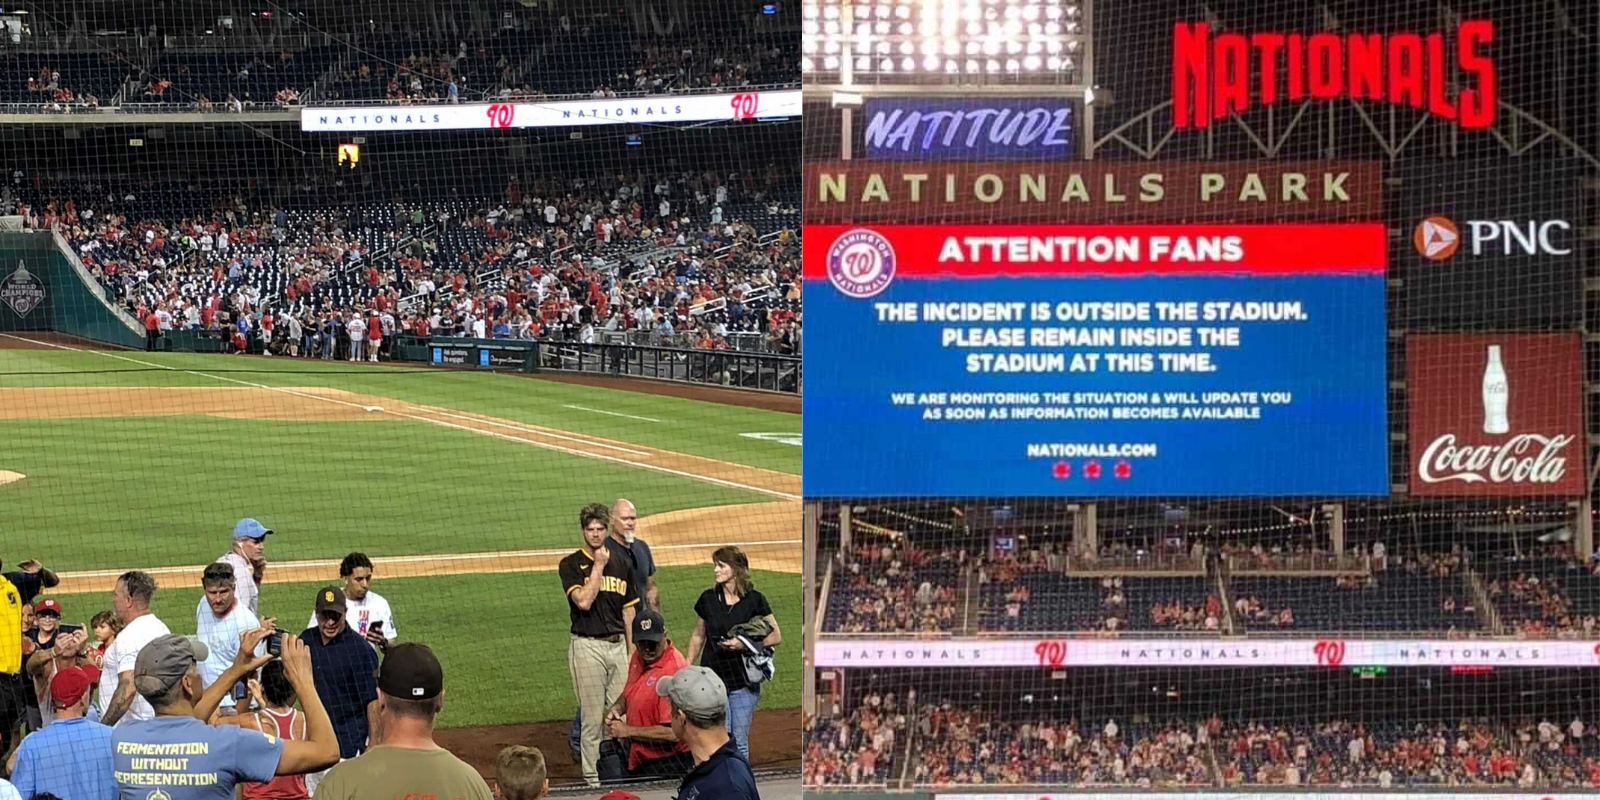 Shooting at Nats-Padres game leaves 3 wounded, raises questions about safety in DC